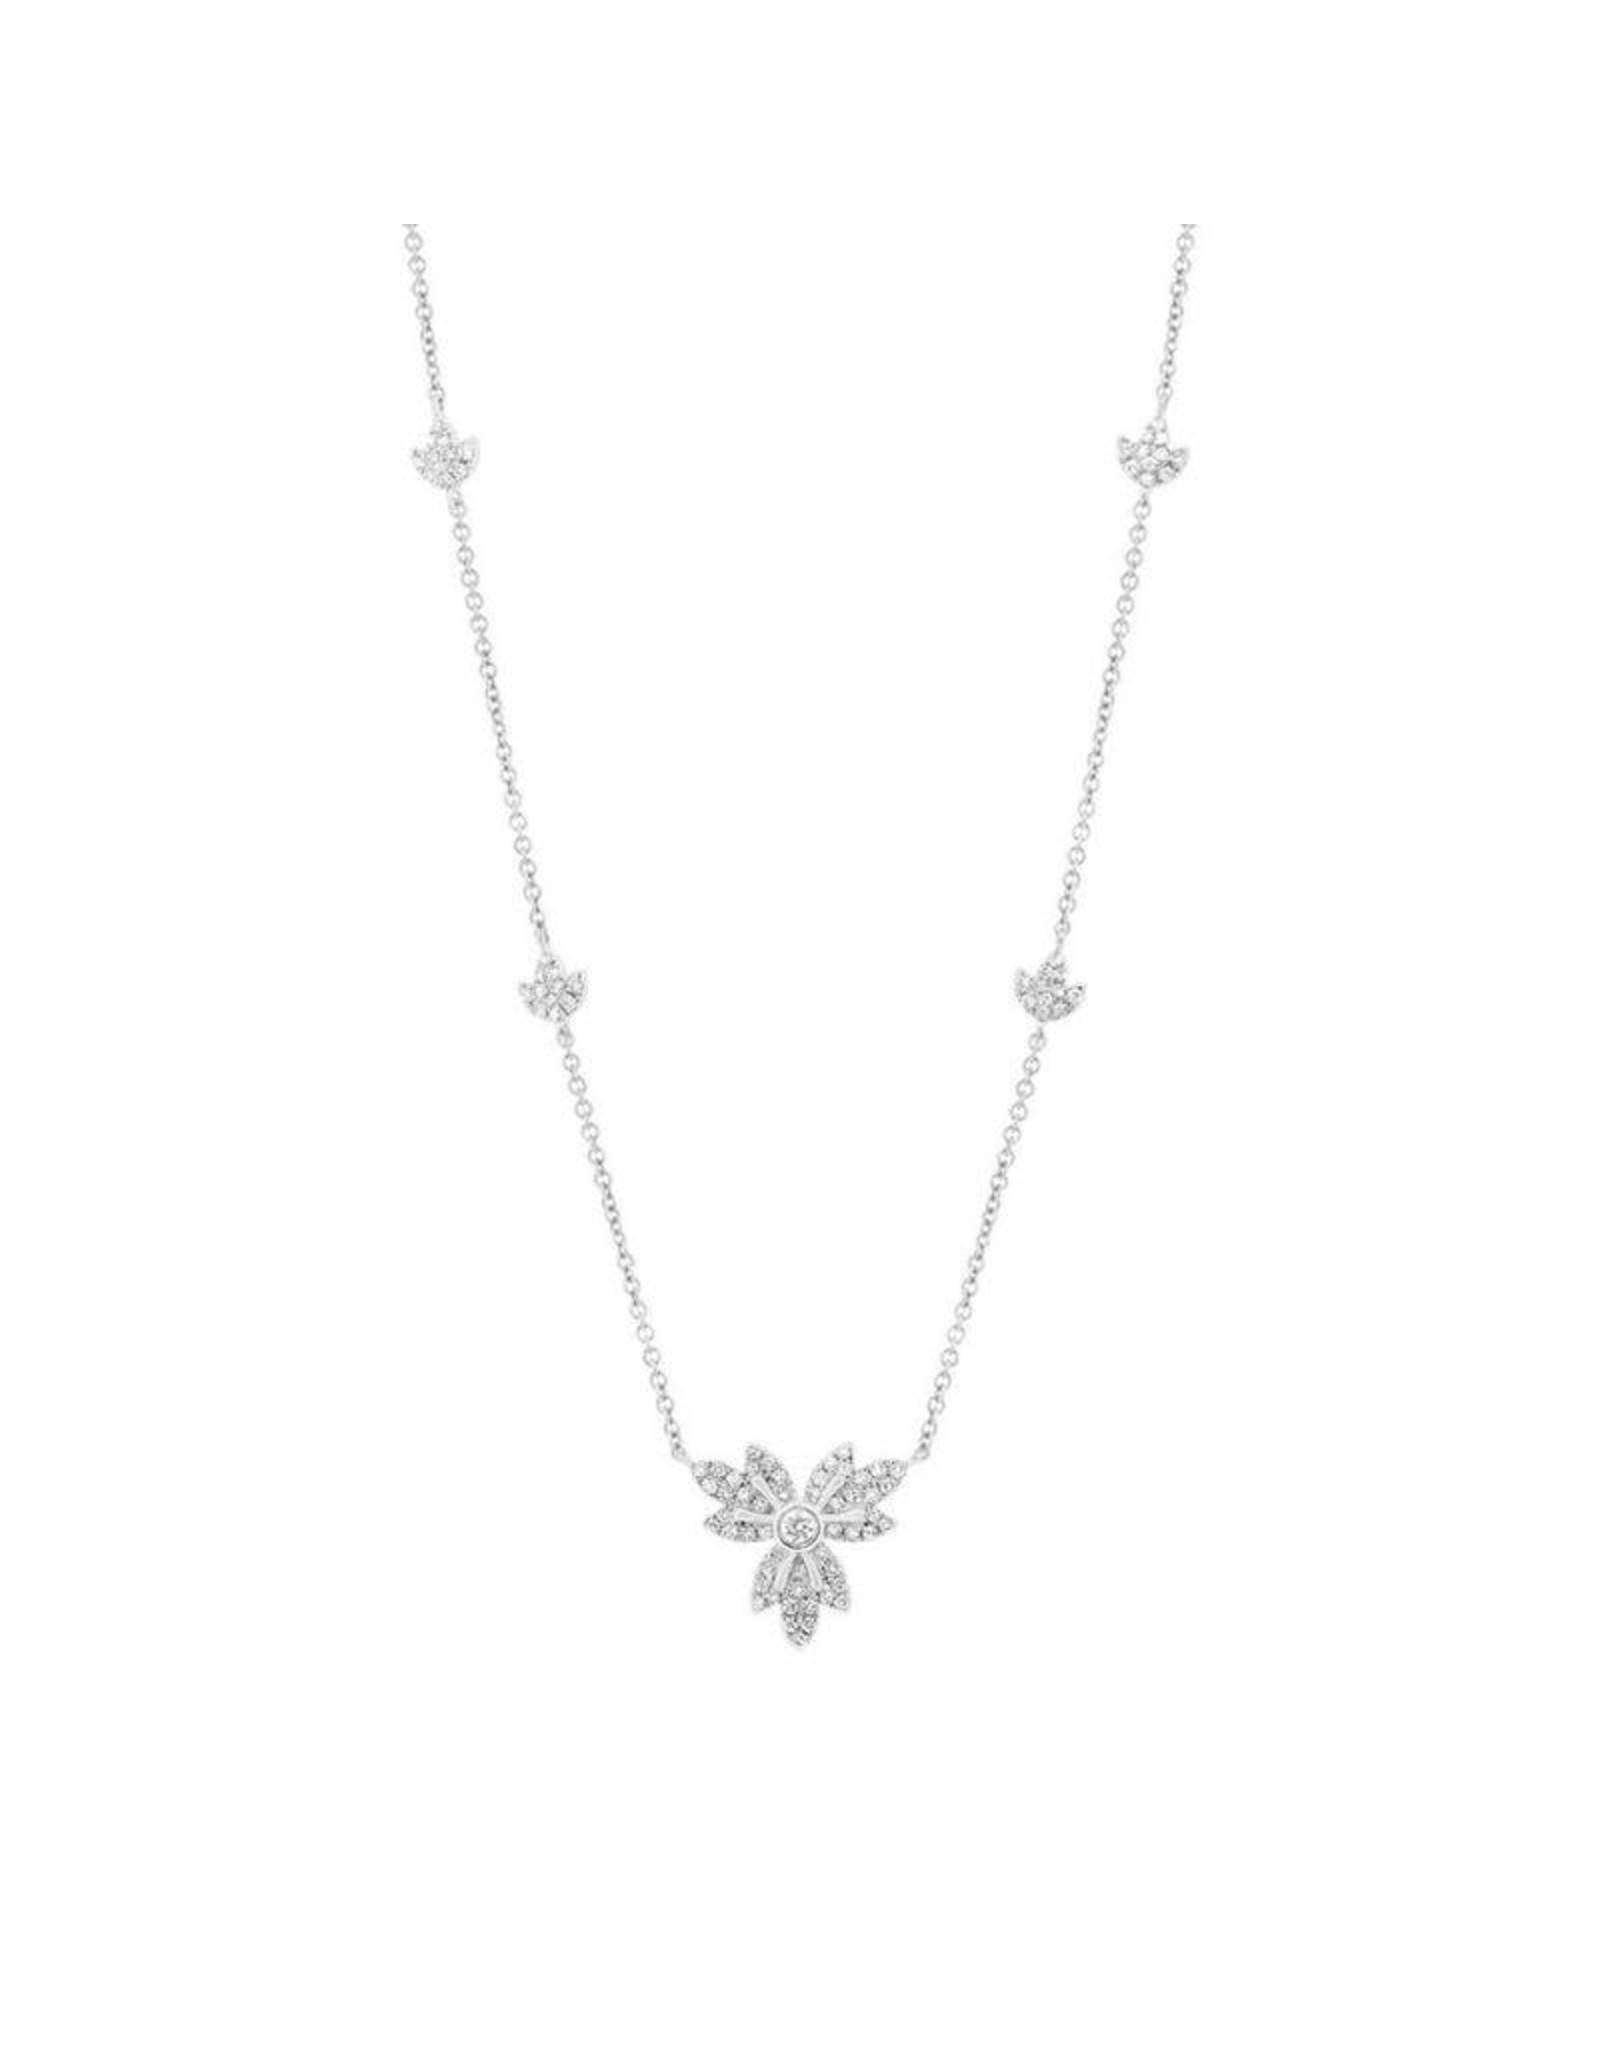 14K White Gold Diamond Lotus Flower Necklace, D: 0.32ct